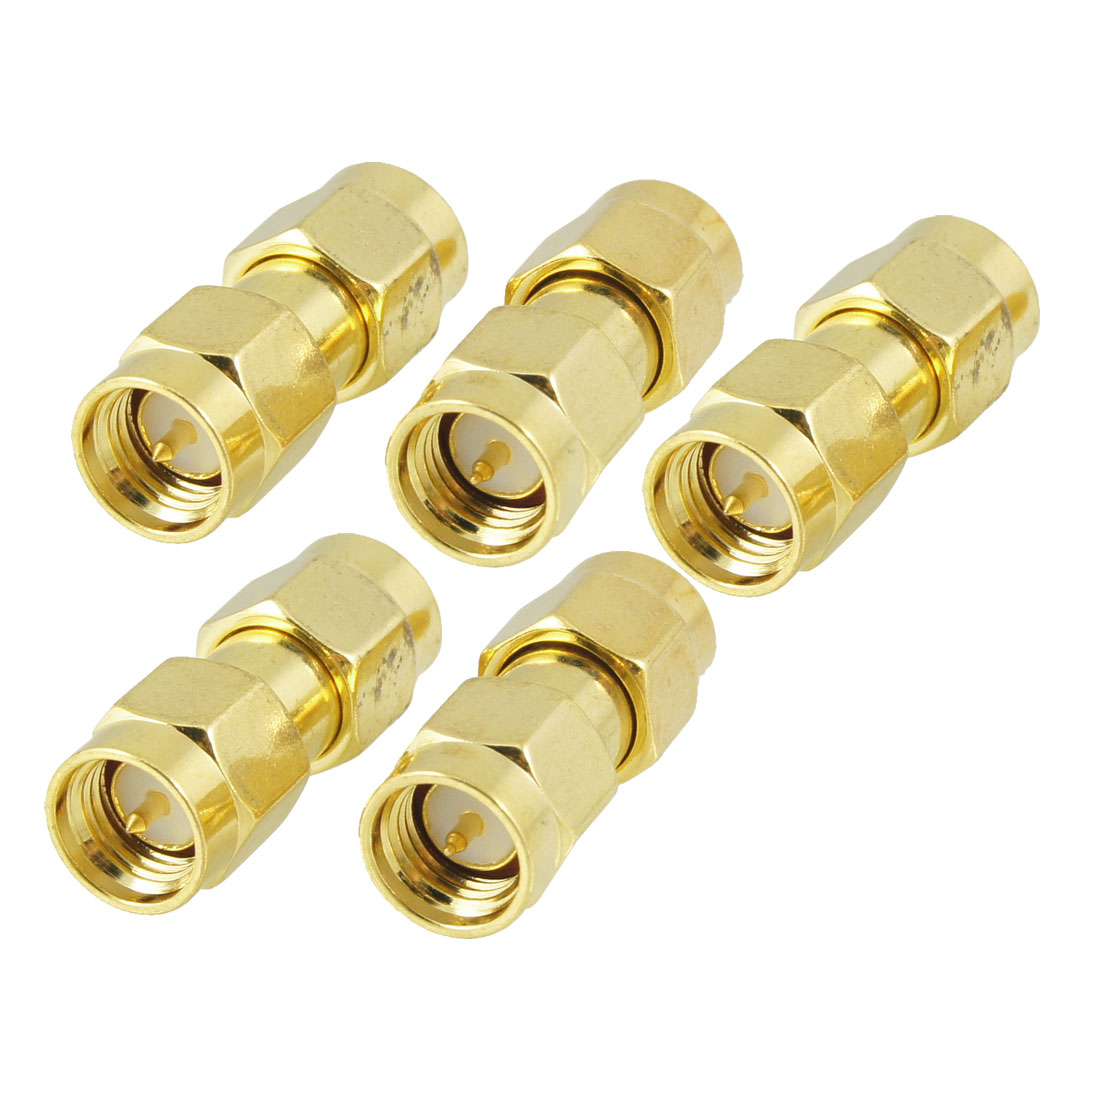 5 Pcs Gold Tone SMA Male to SMA Male Connector RF Coaxial Adapter Connector